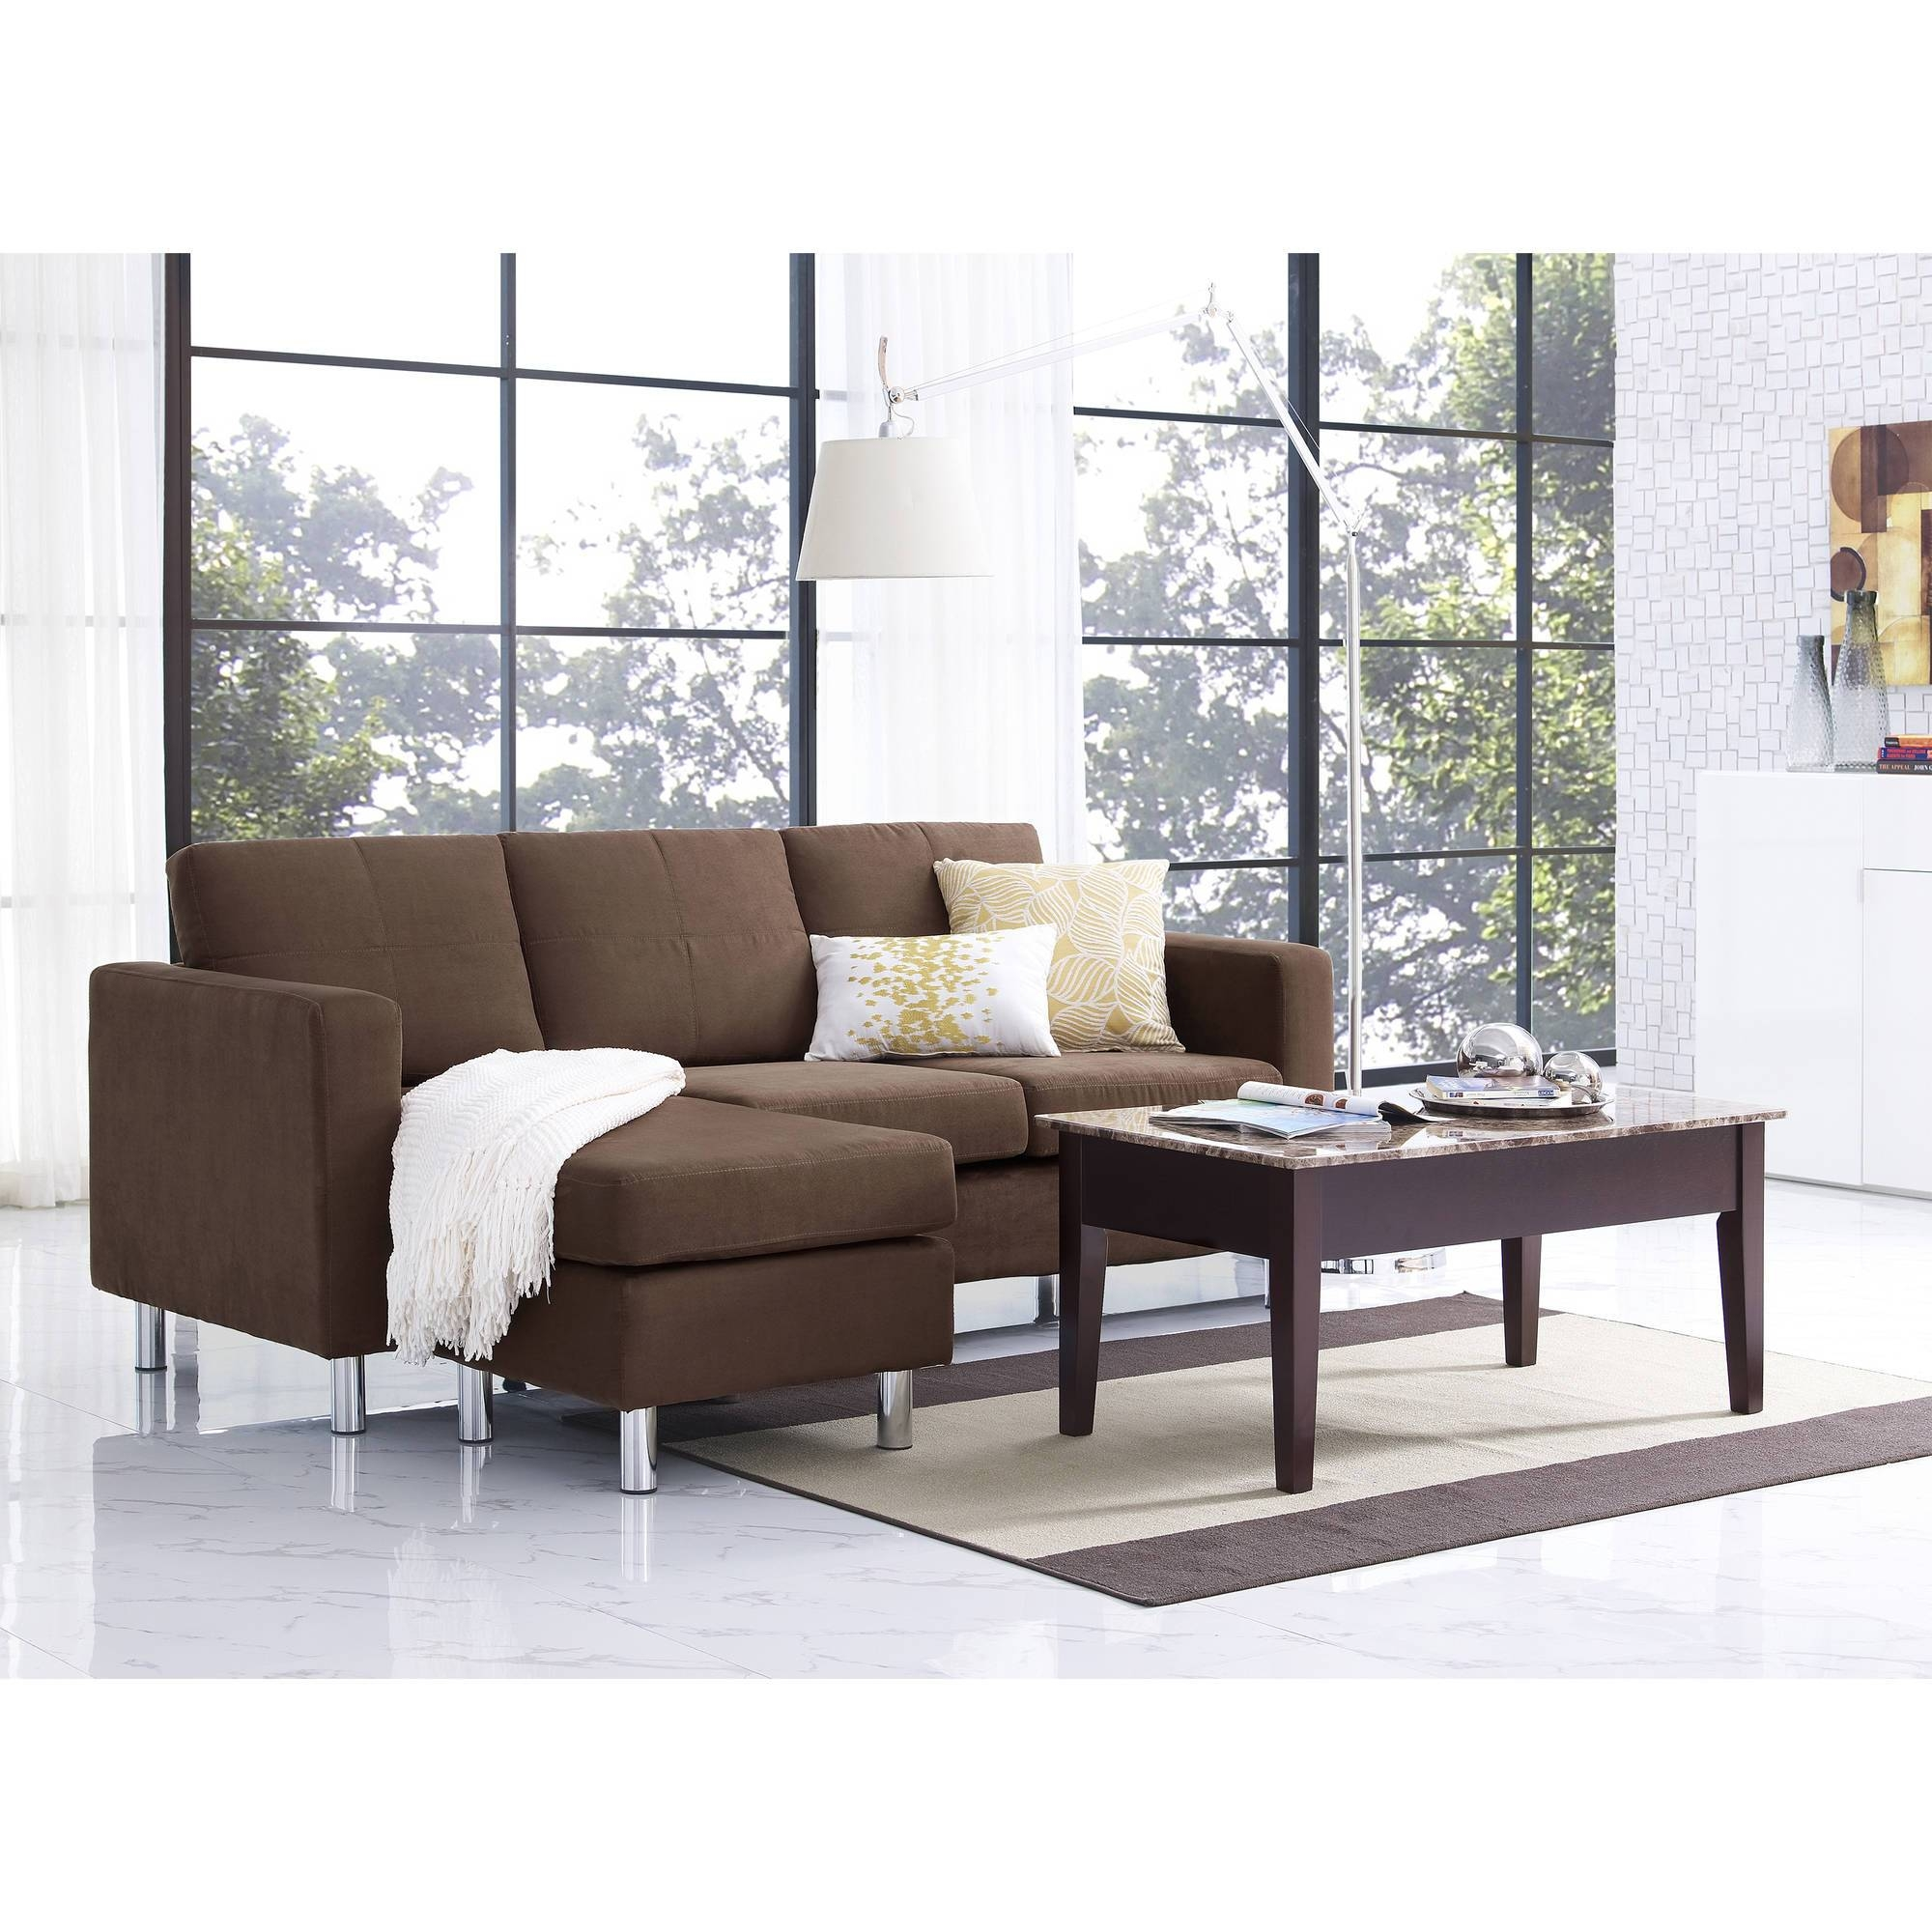 Dorel Living Small Spaces Configurable Sectional Sofa, Multiple for Small Sectional Sofa (Image 8 of 30)